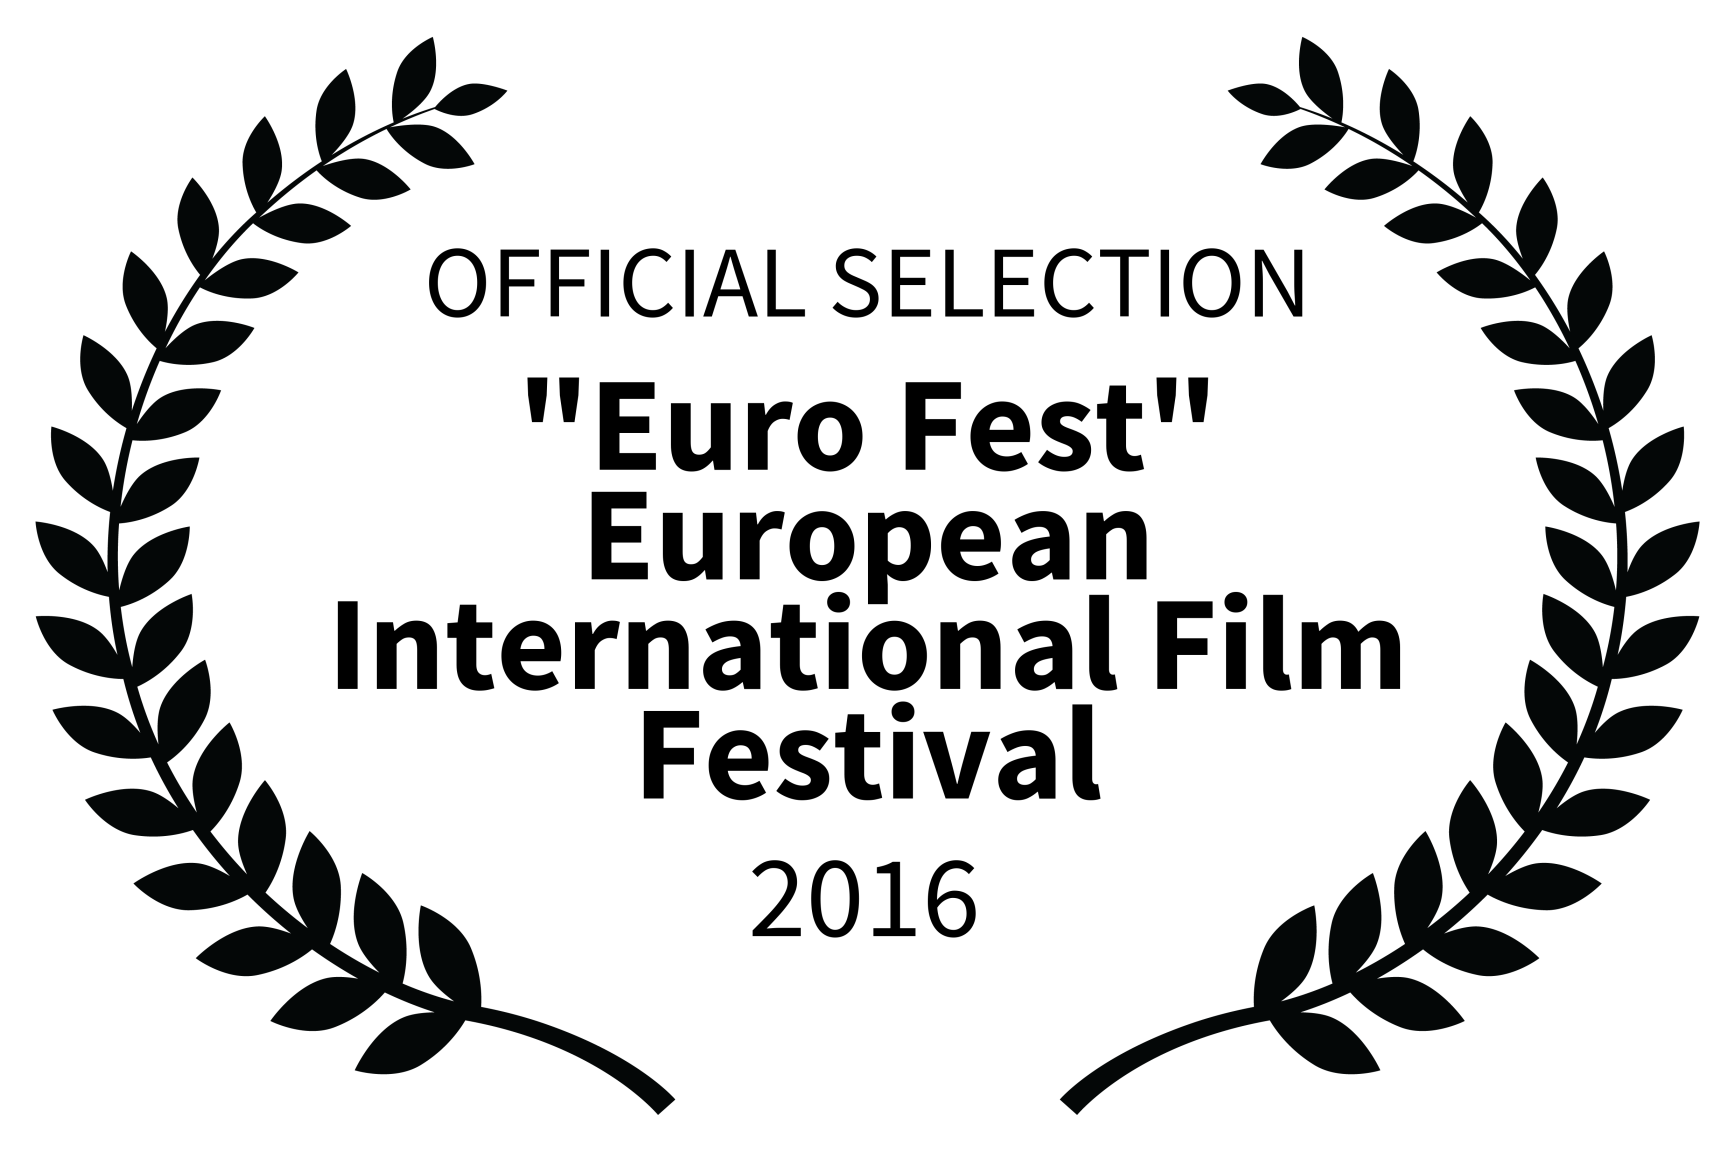 OFFICIAL SELECTION - Euro Fest European International Film Festival - 2016 (1).png